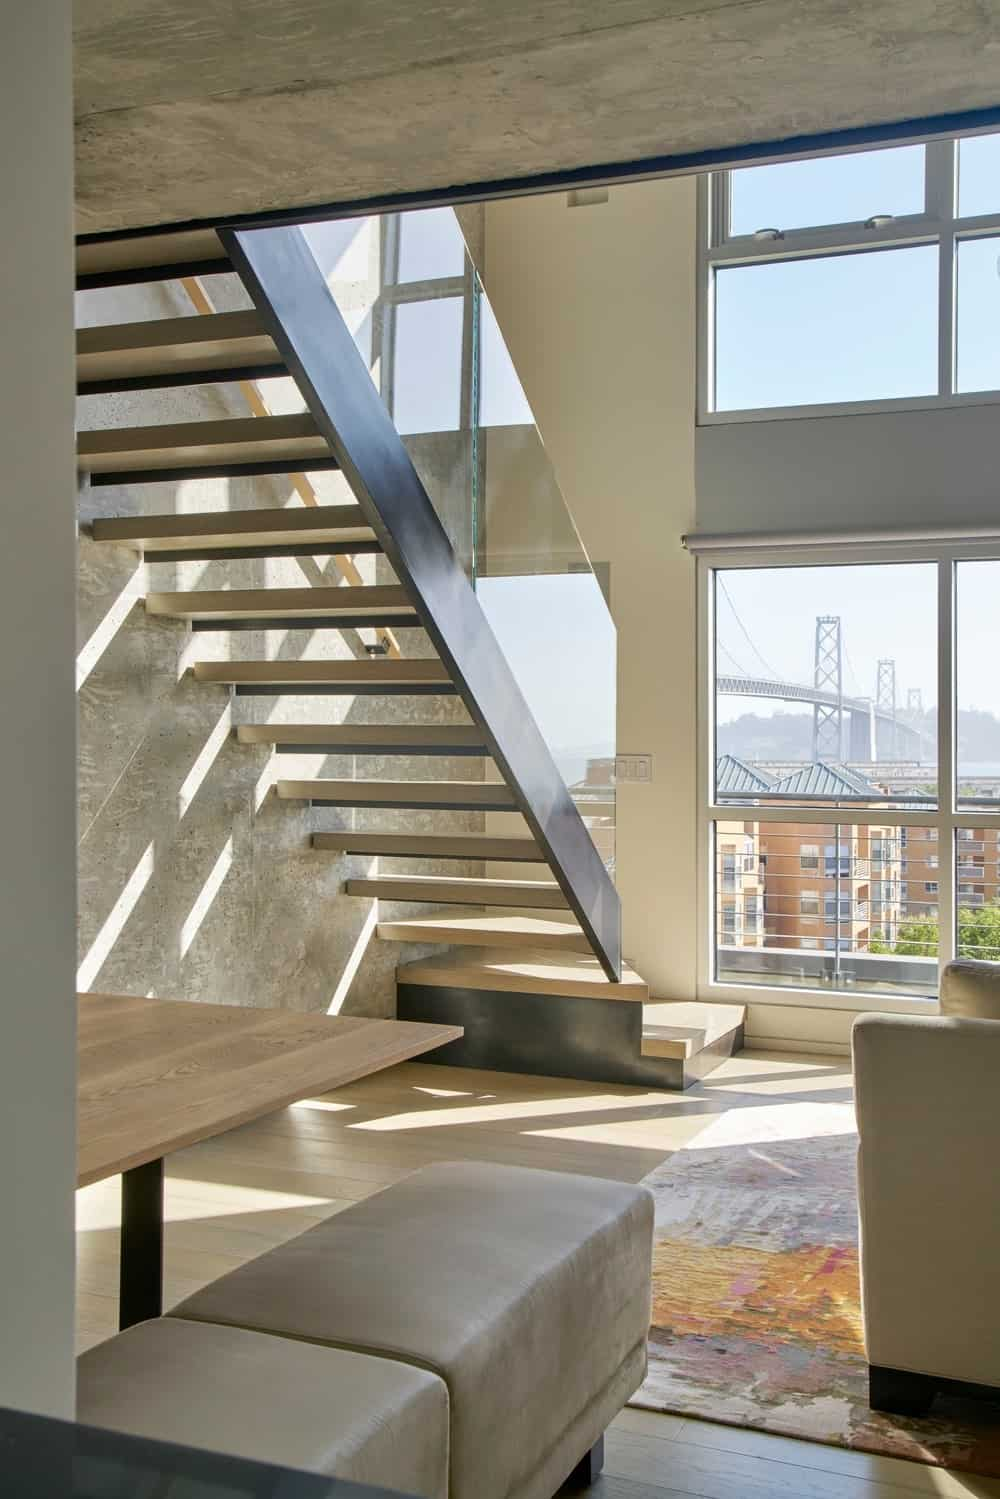 The home has a stylish staircase and glass windows. Photo credit: Bruce Damonte